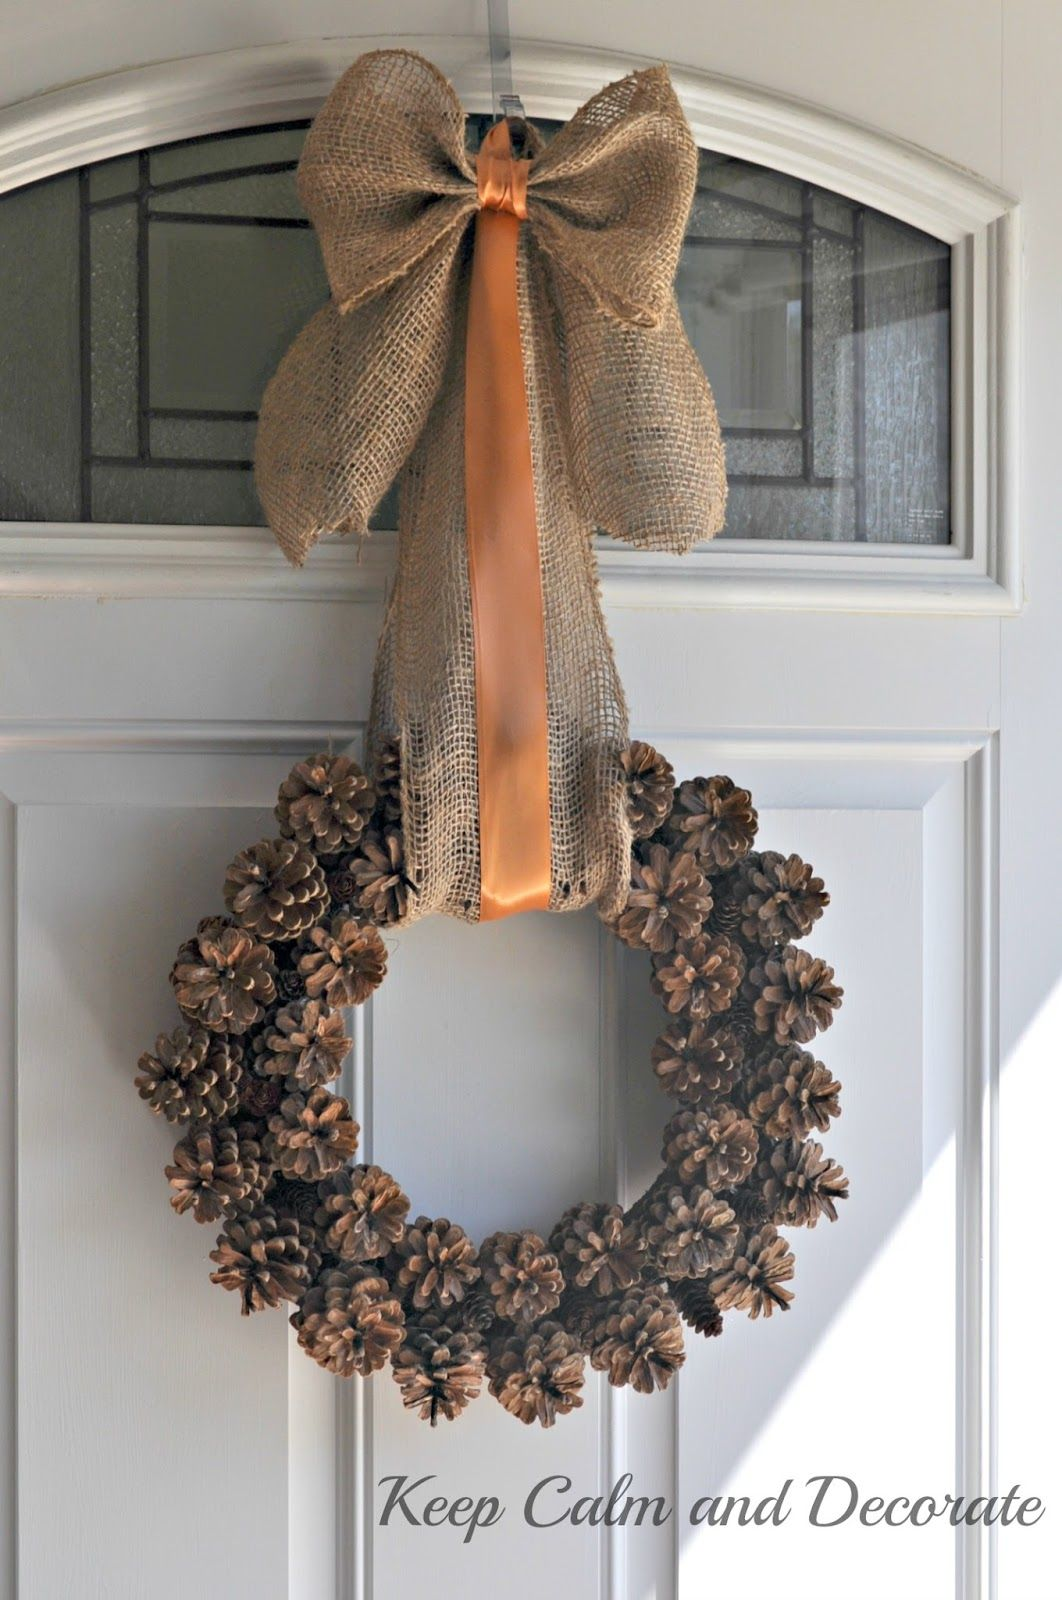 Pinecone and acorn wreaths